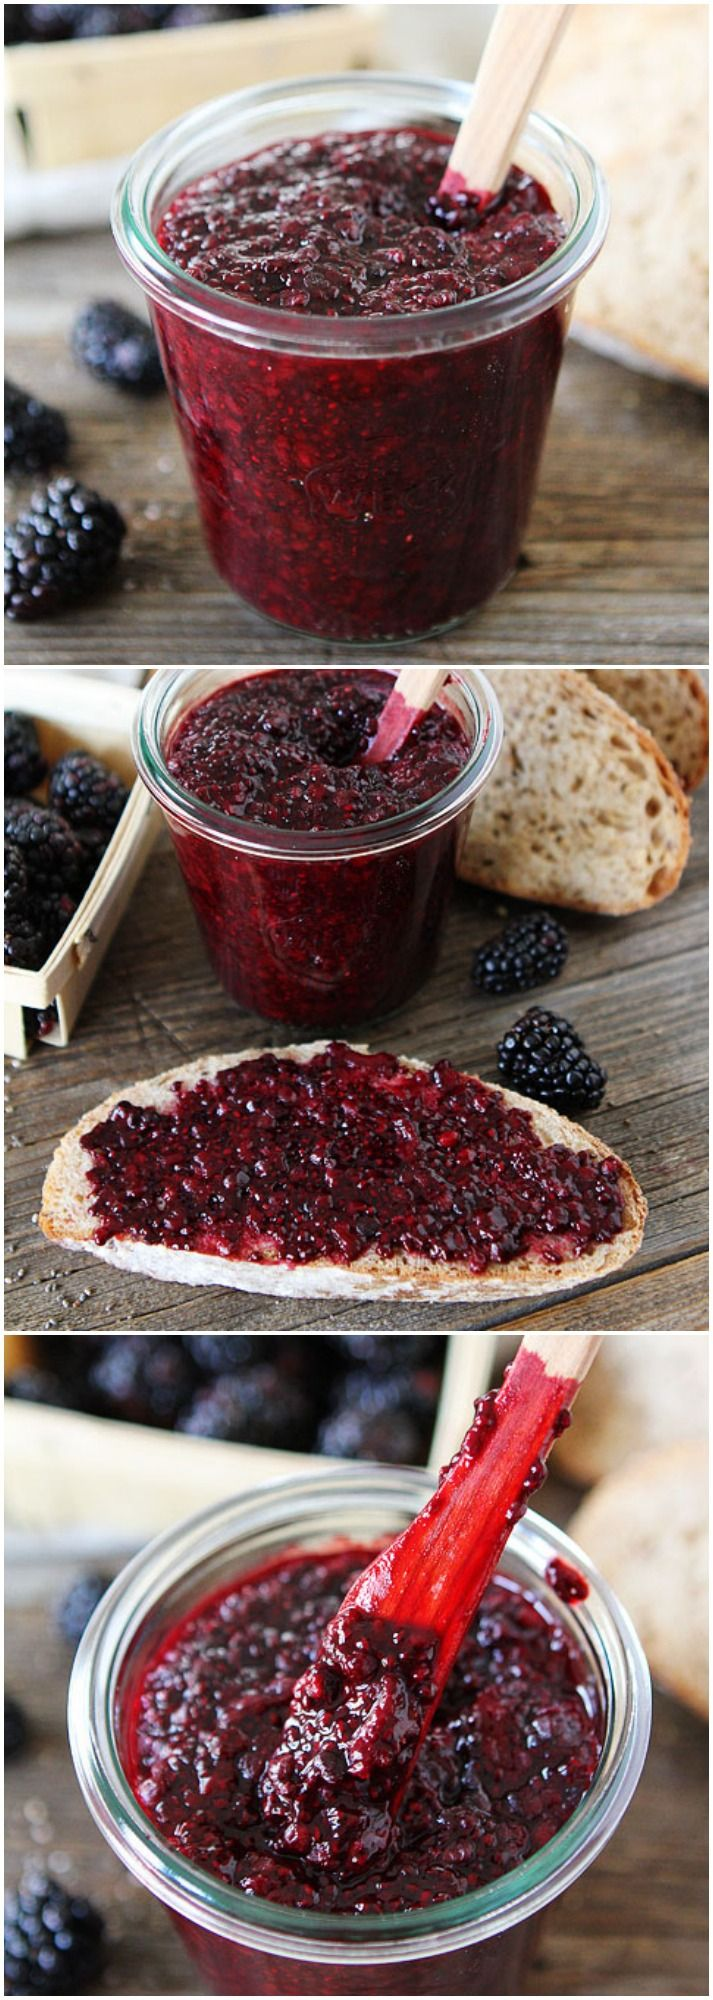 Blackberry Chia Seed Jam - the chia seeds are the thickener. Brilliant!